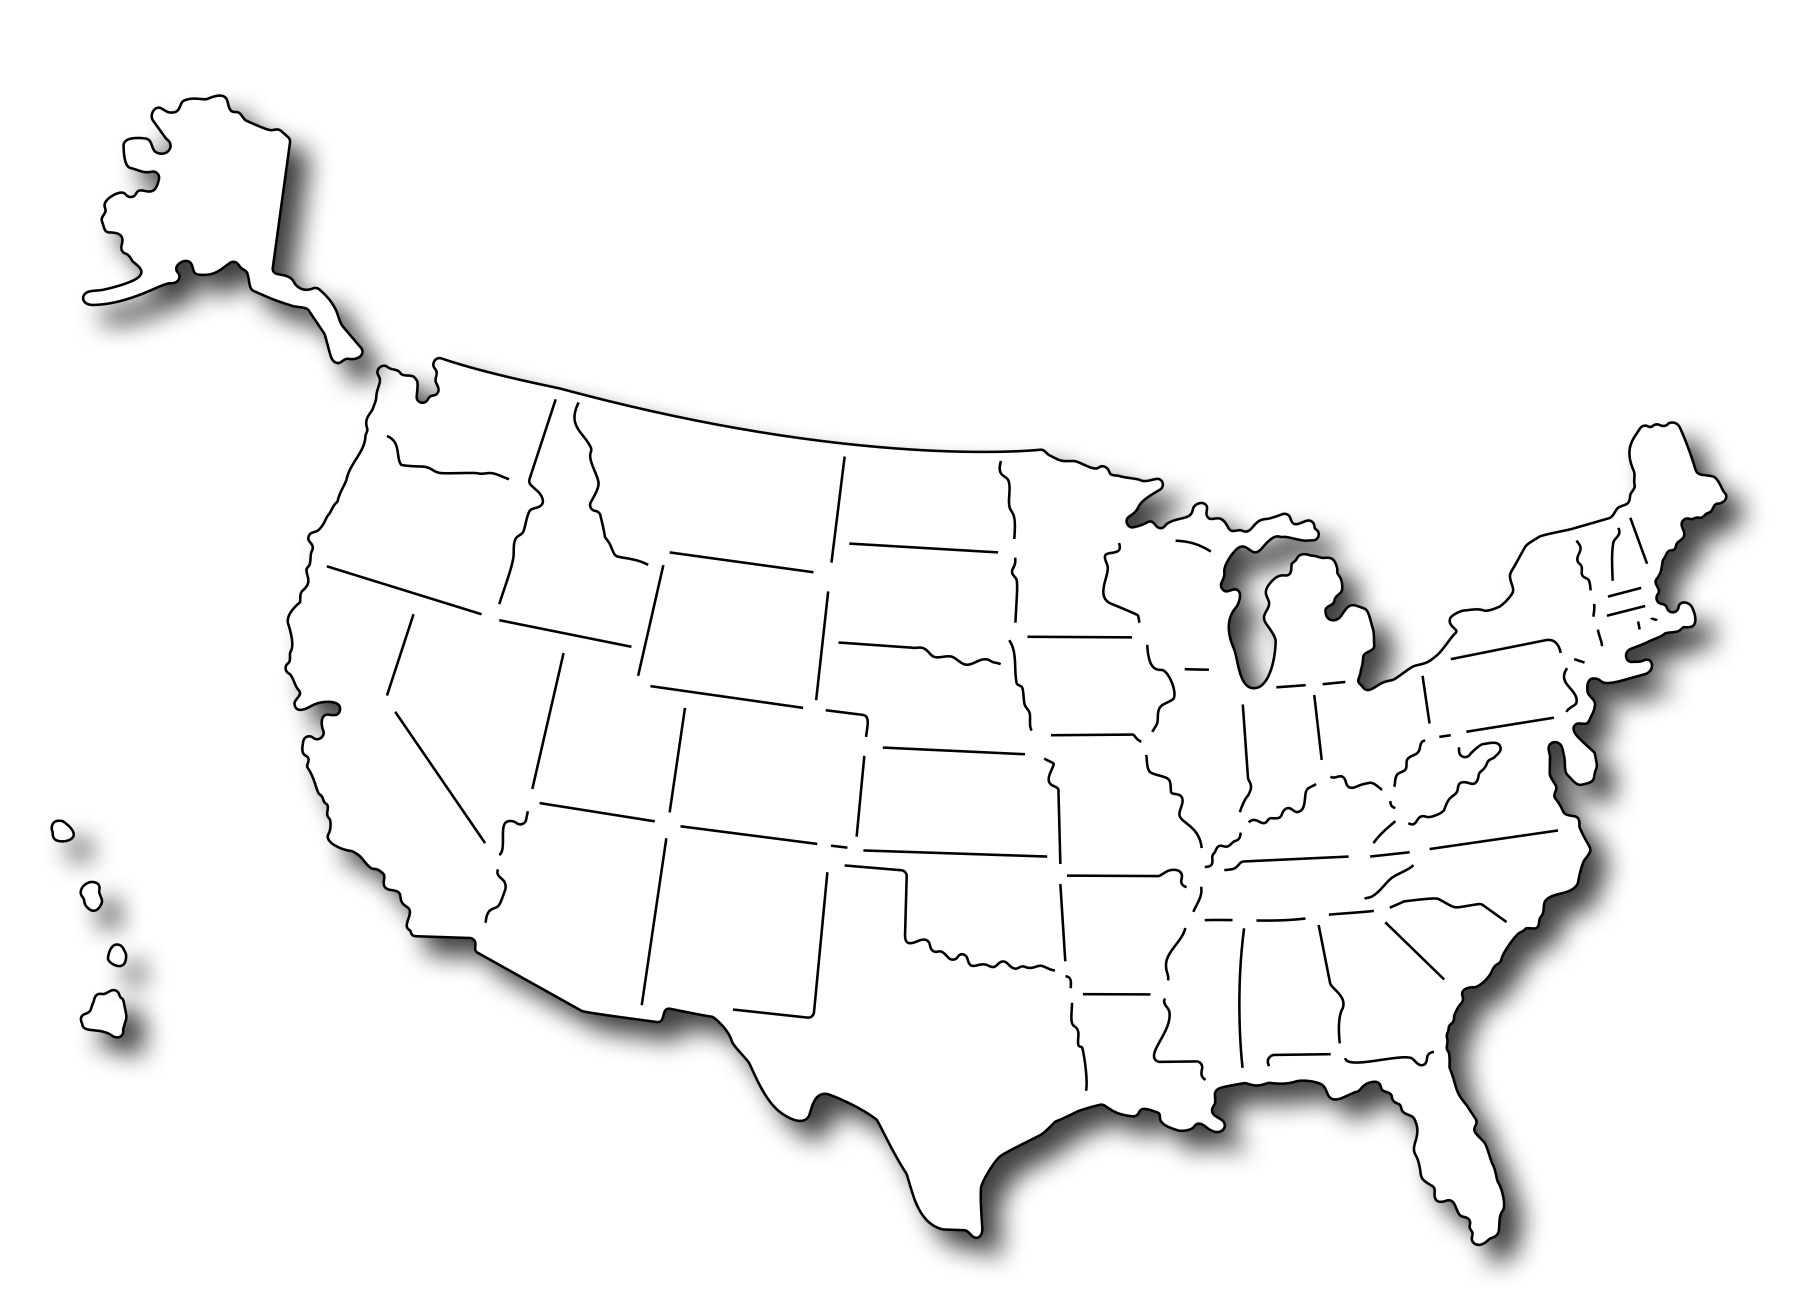 Frantic Stamper Precision - USA Map (set of 3 s) on english usa map, fedex usa map, mexican usa map, michelin usa map, napoleon usa map, continental world map, global usa map, ottawa usa map, continental map of the us, continental us time zone map, indian usa map, empire usa map, continental us map major cities, franklin usa map, capital usa map, continental weather, chinese usa map, american usa map, usa county map, continental india map,